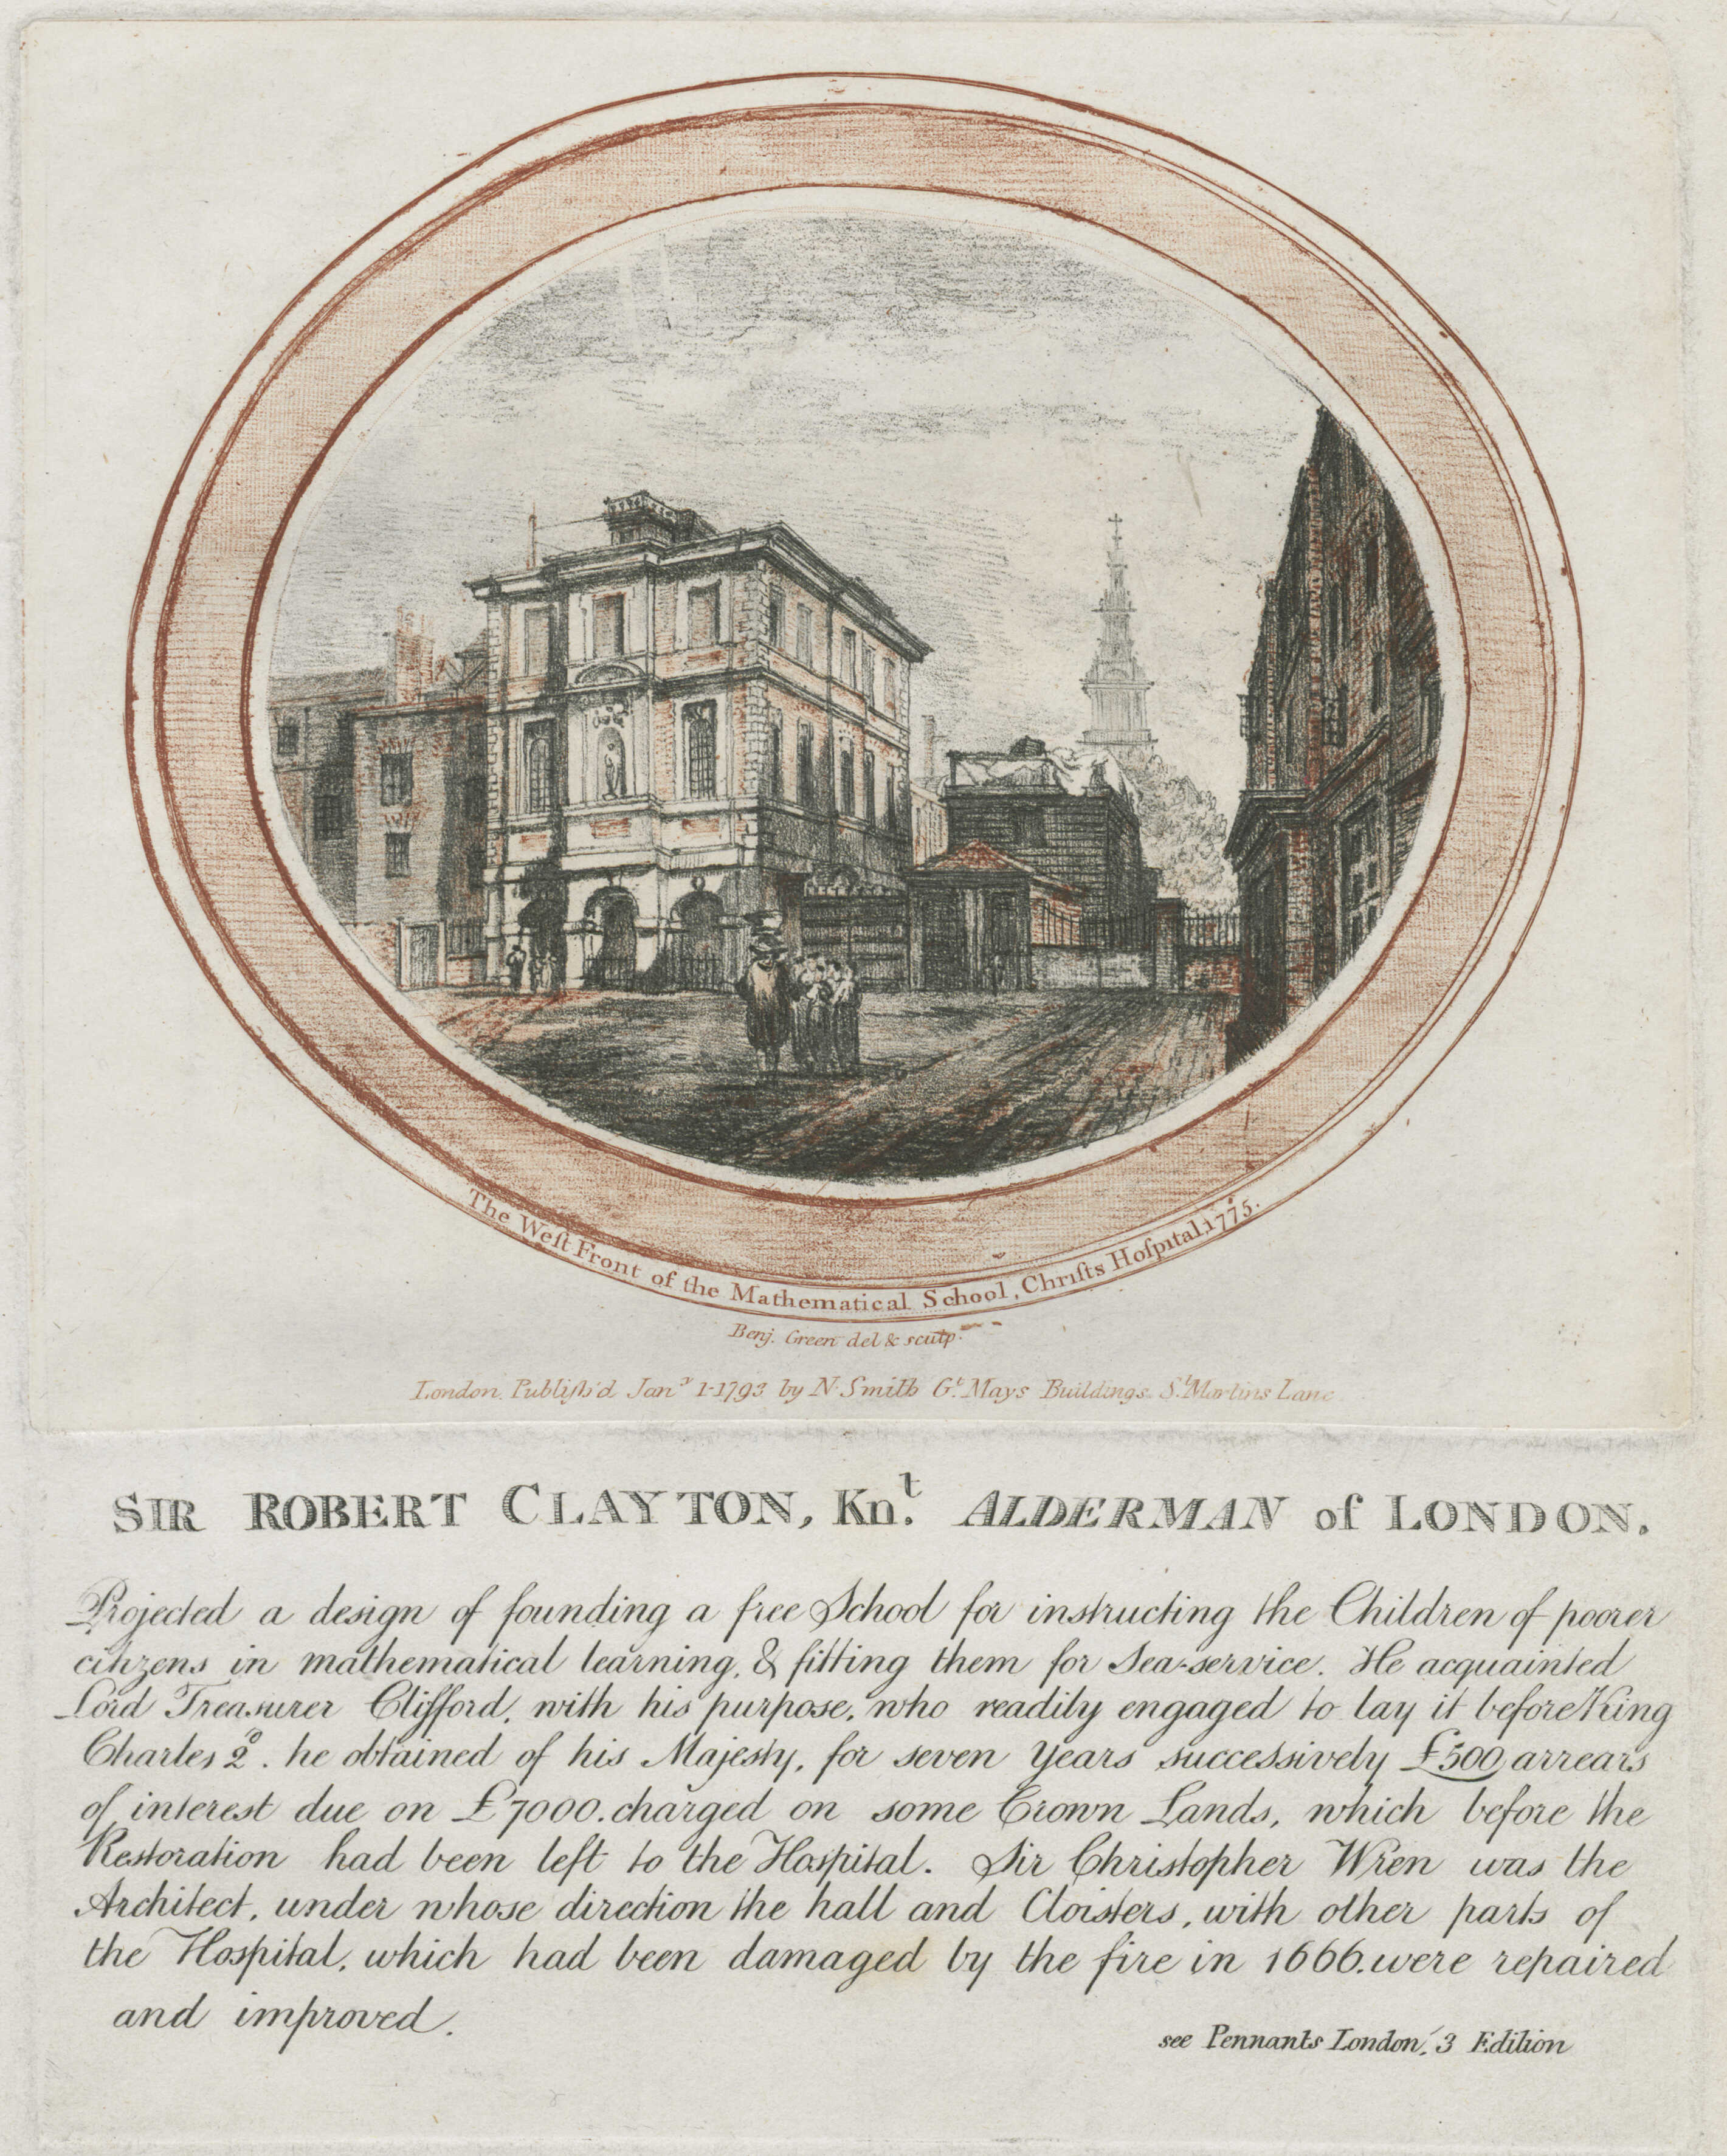 41-the-west-front-of-the-mathematical-school-christs-hospital-1775-sir-robert-clayton